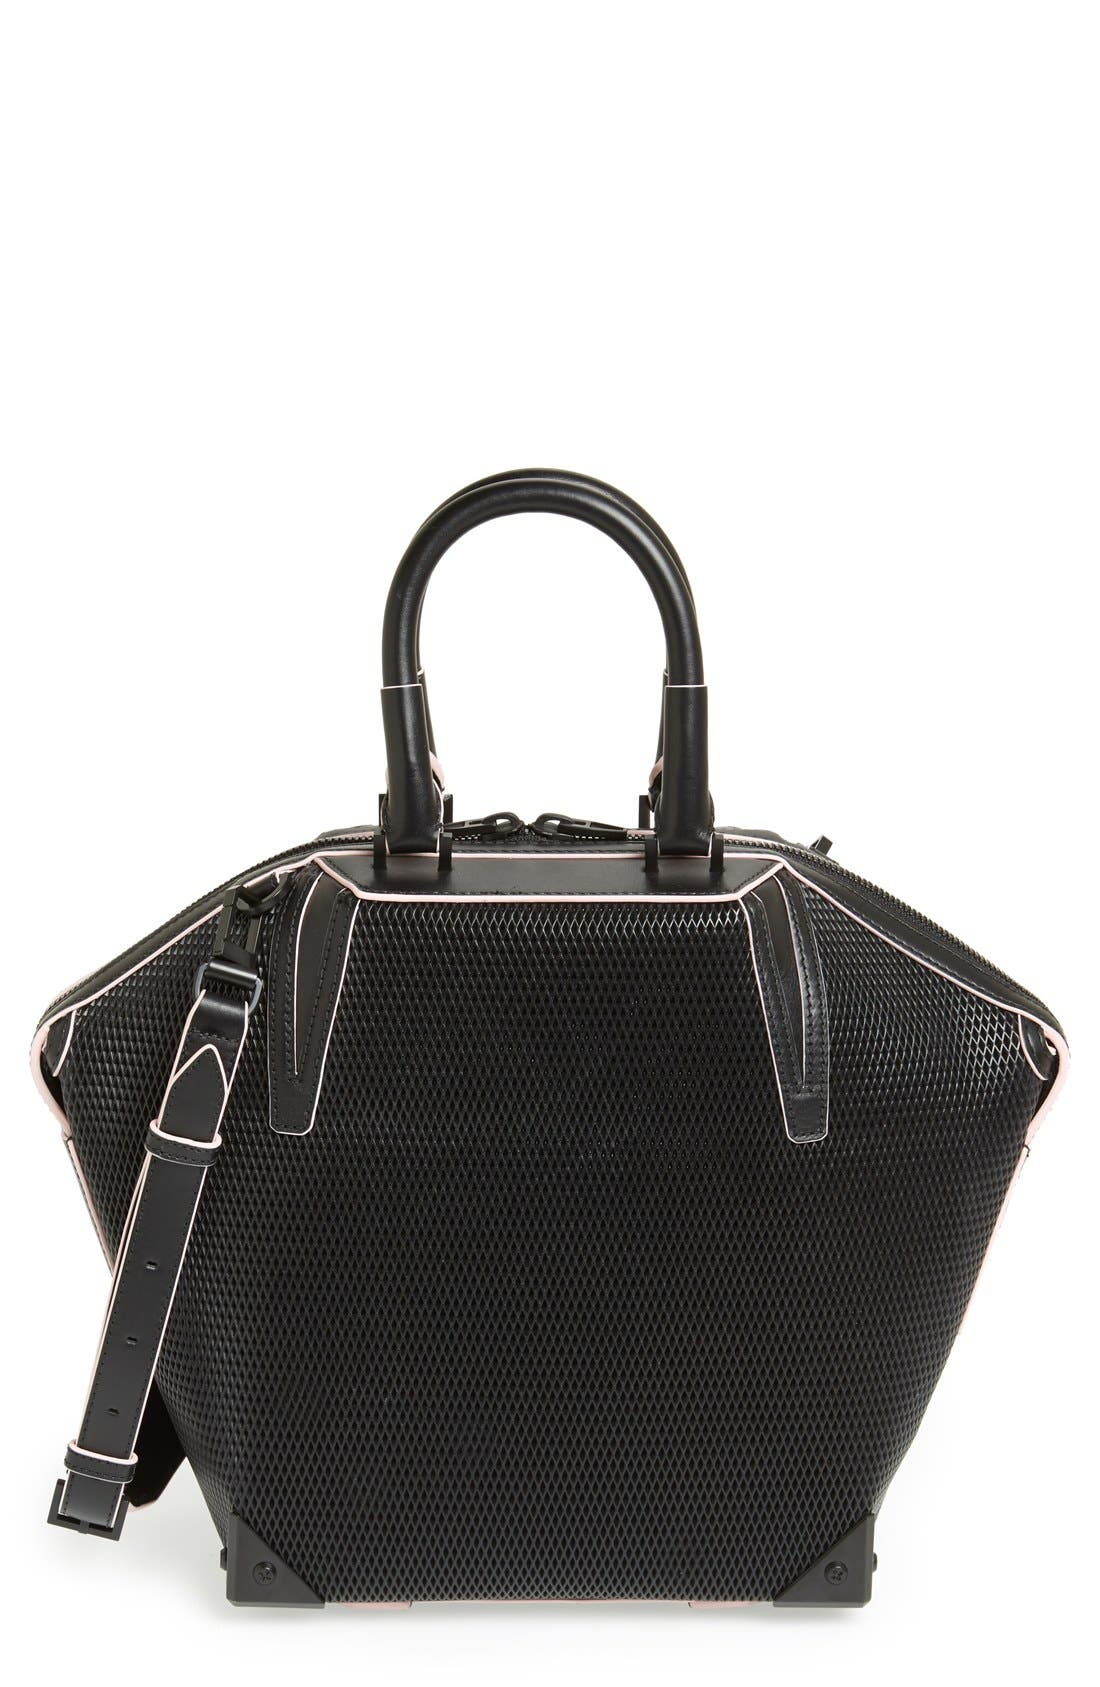 Main Image - Alexander Wang 'Small Emile' Leather Tote